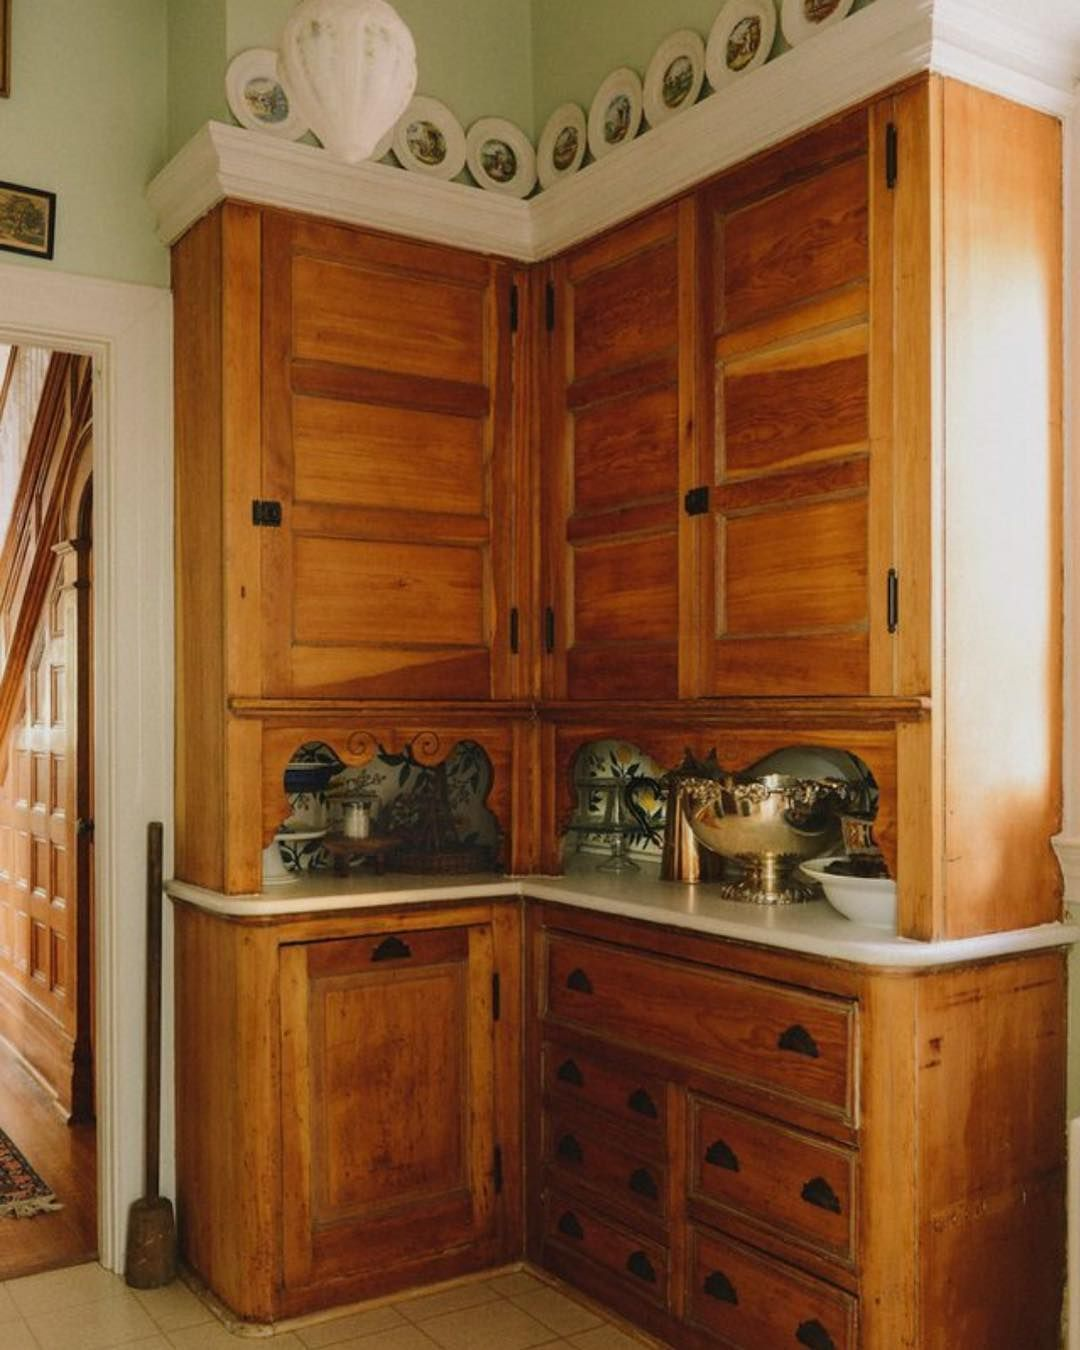 Century Kitchens On Instagram Please Direct Your Attention To The Scrolly Bits Below The Upper Cabinets Kitchen Cabinets Victorian Kitchen Vintage Kitchen